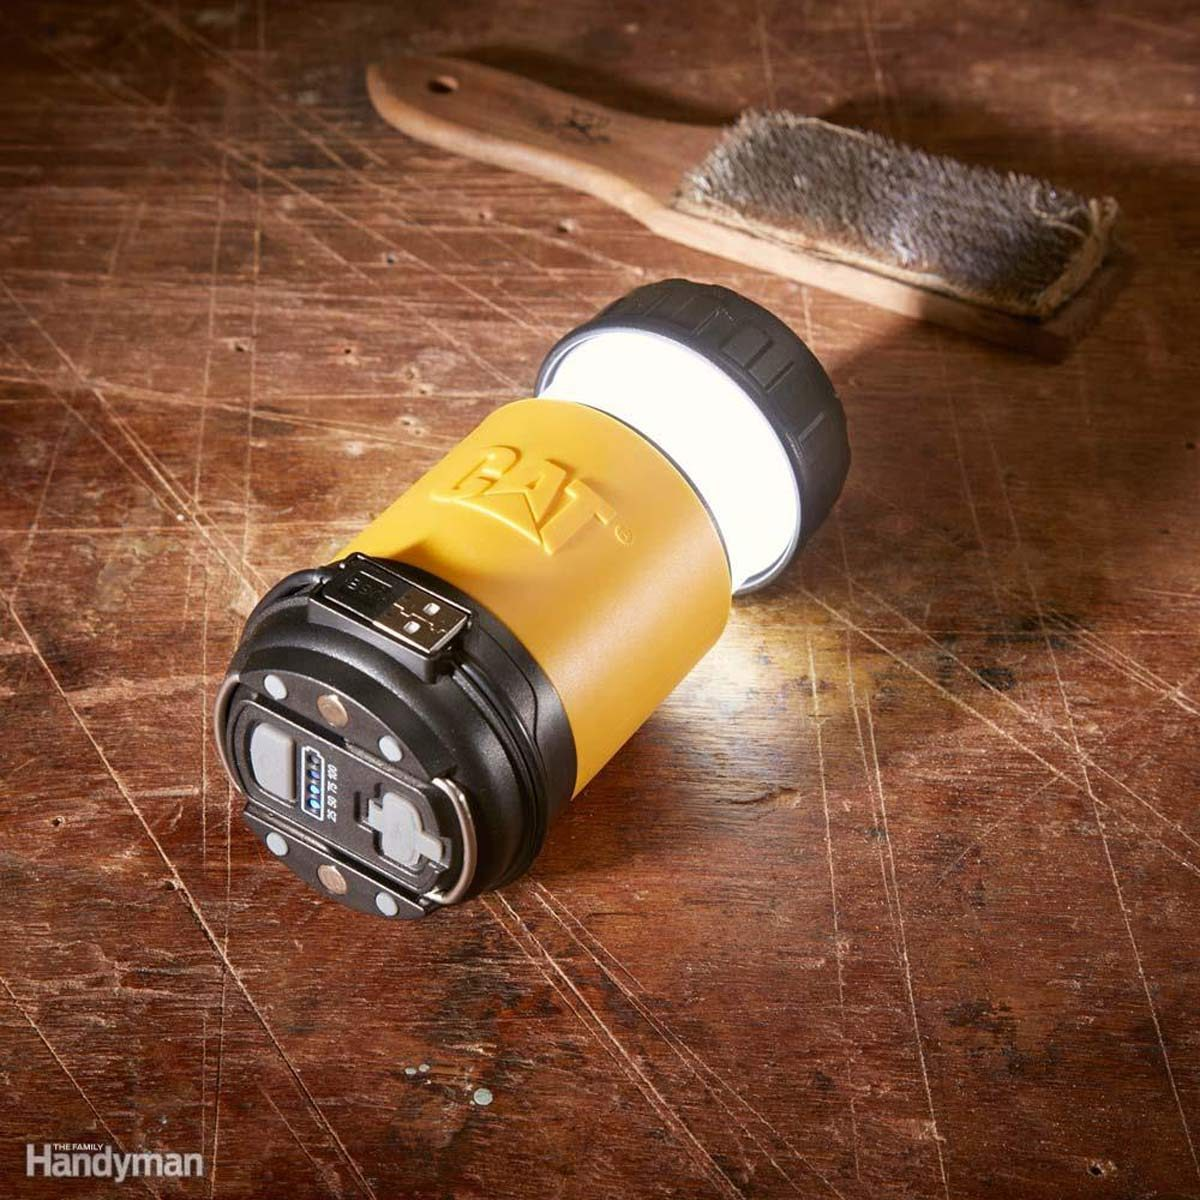 It's a Utility Light, Lantern, Flashlight and More...